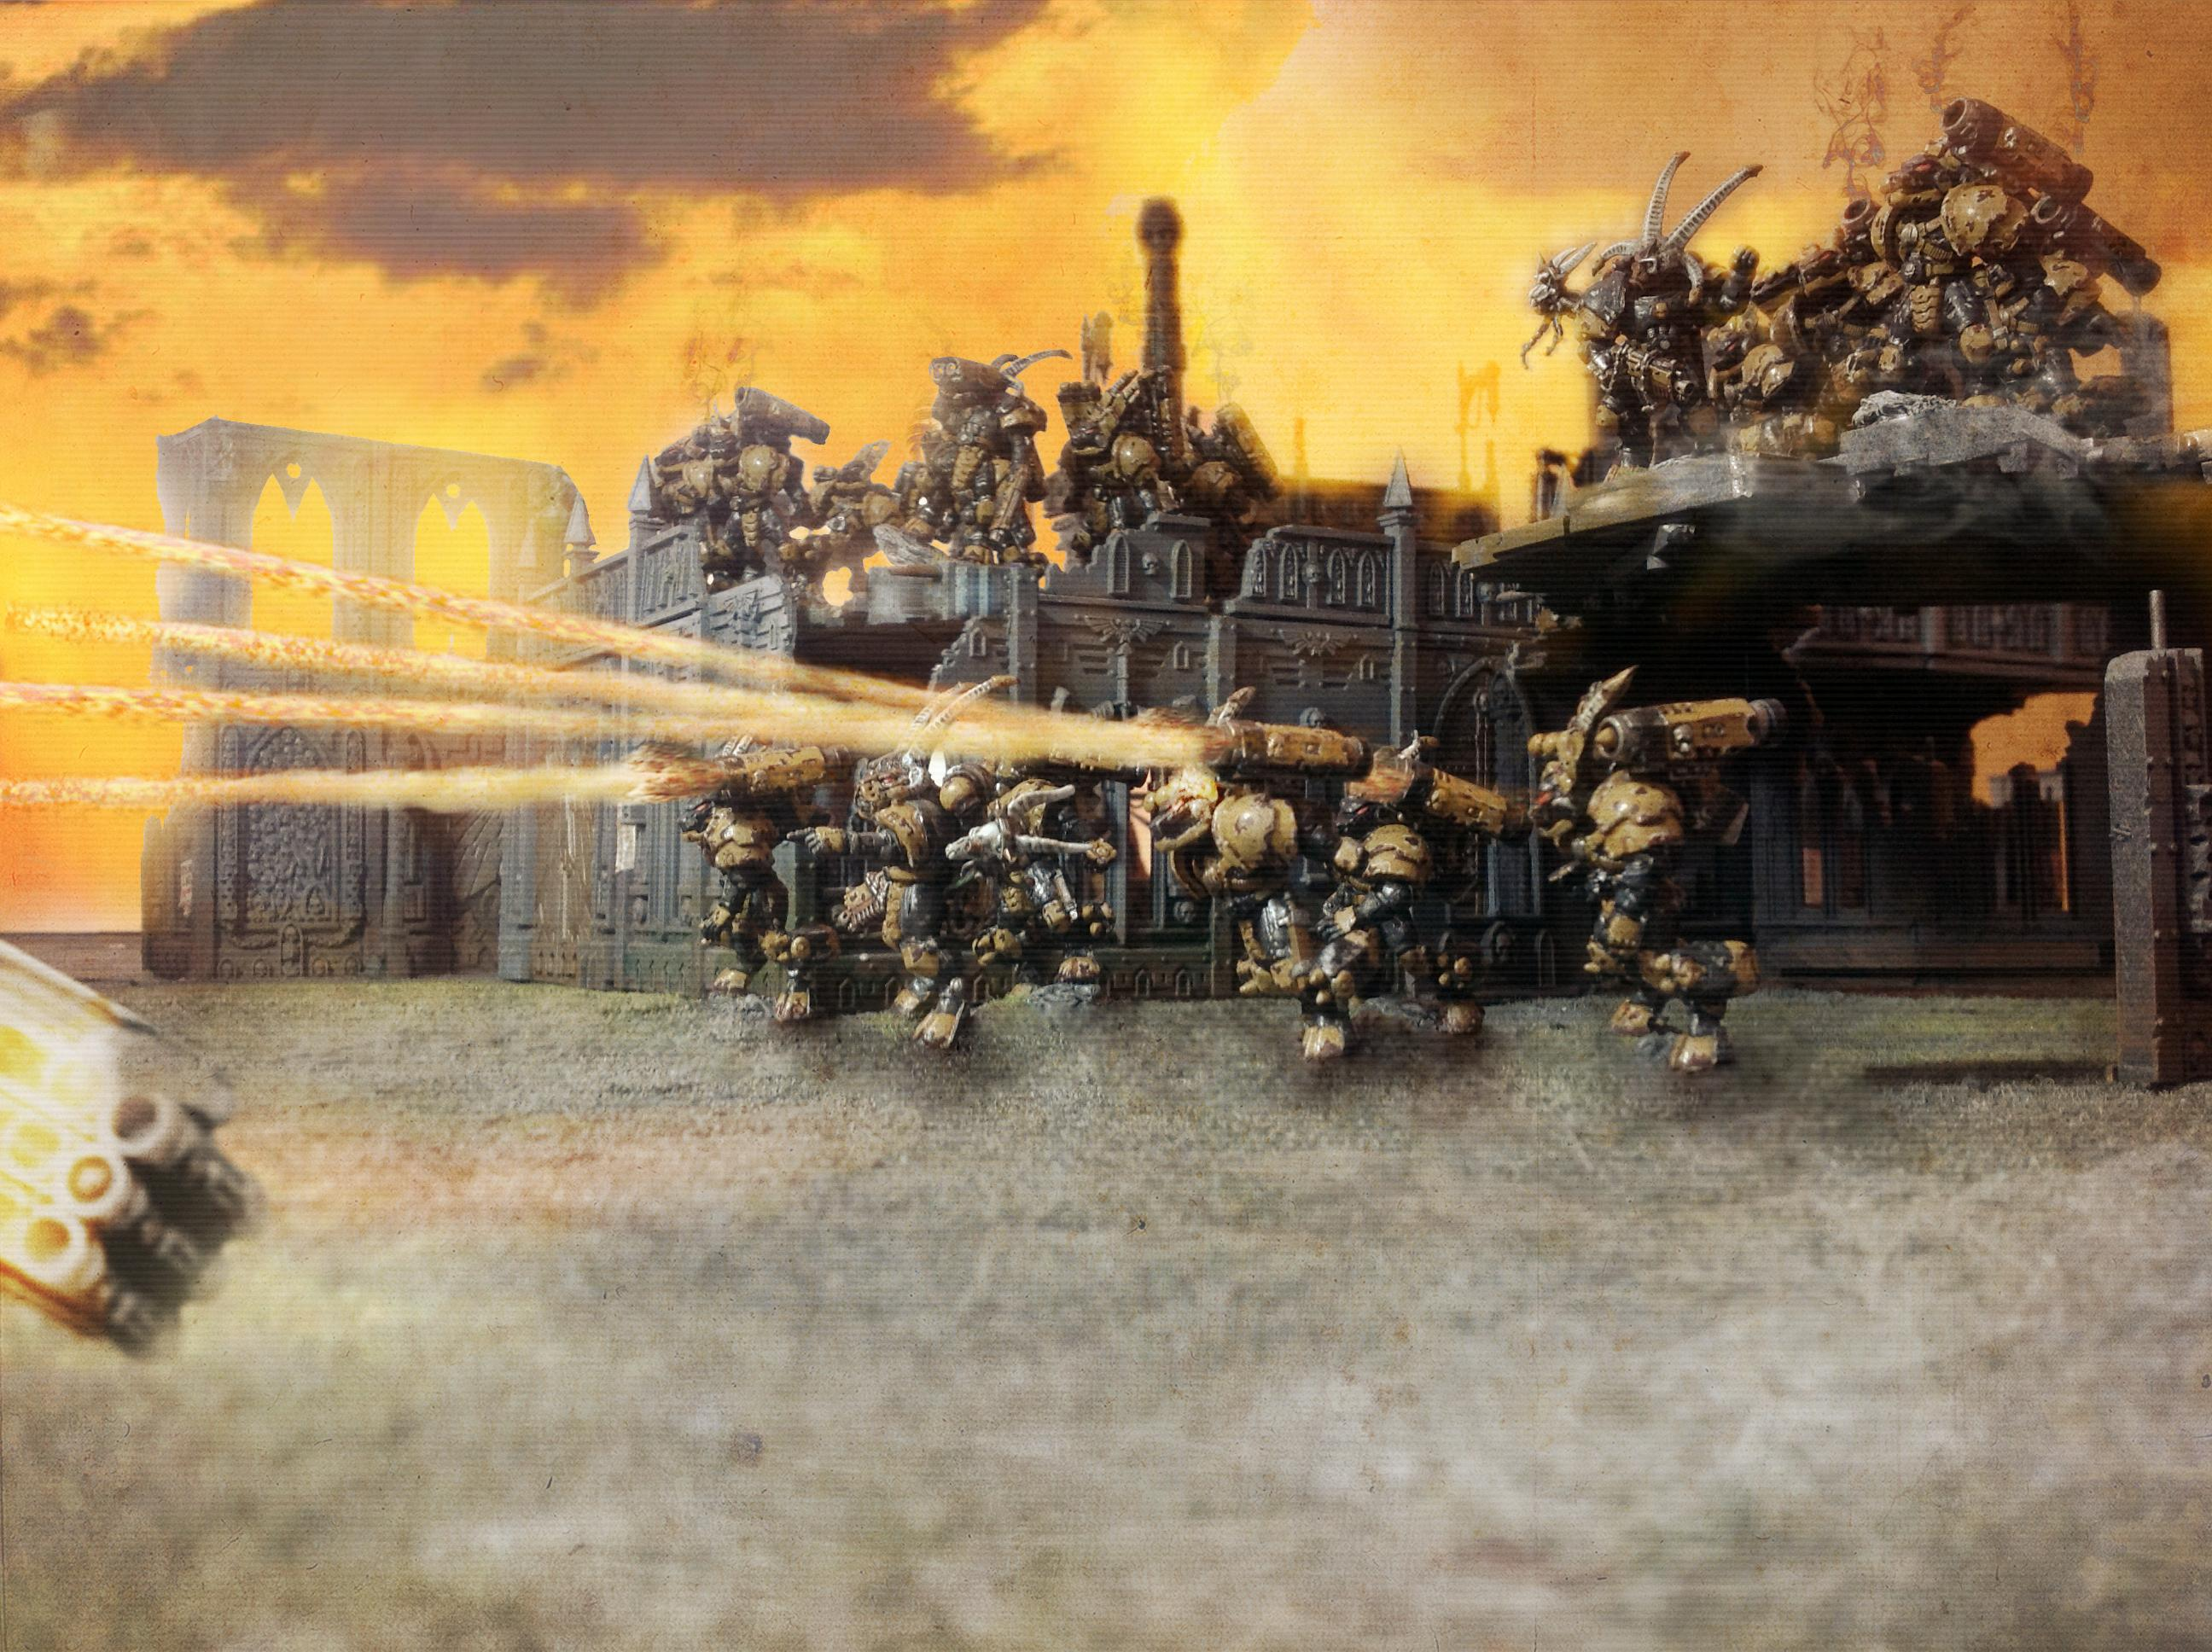 Army, Beast, Beastmen, Fangs, Launcher, Long, Metal, Missile, Space, Space Marines, Warhammer 40,000, Wolf, Wolves